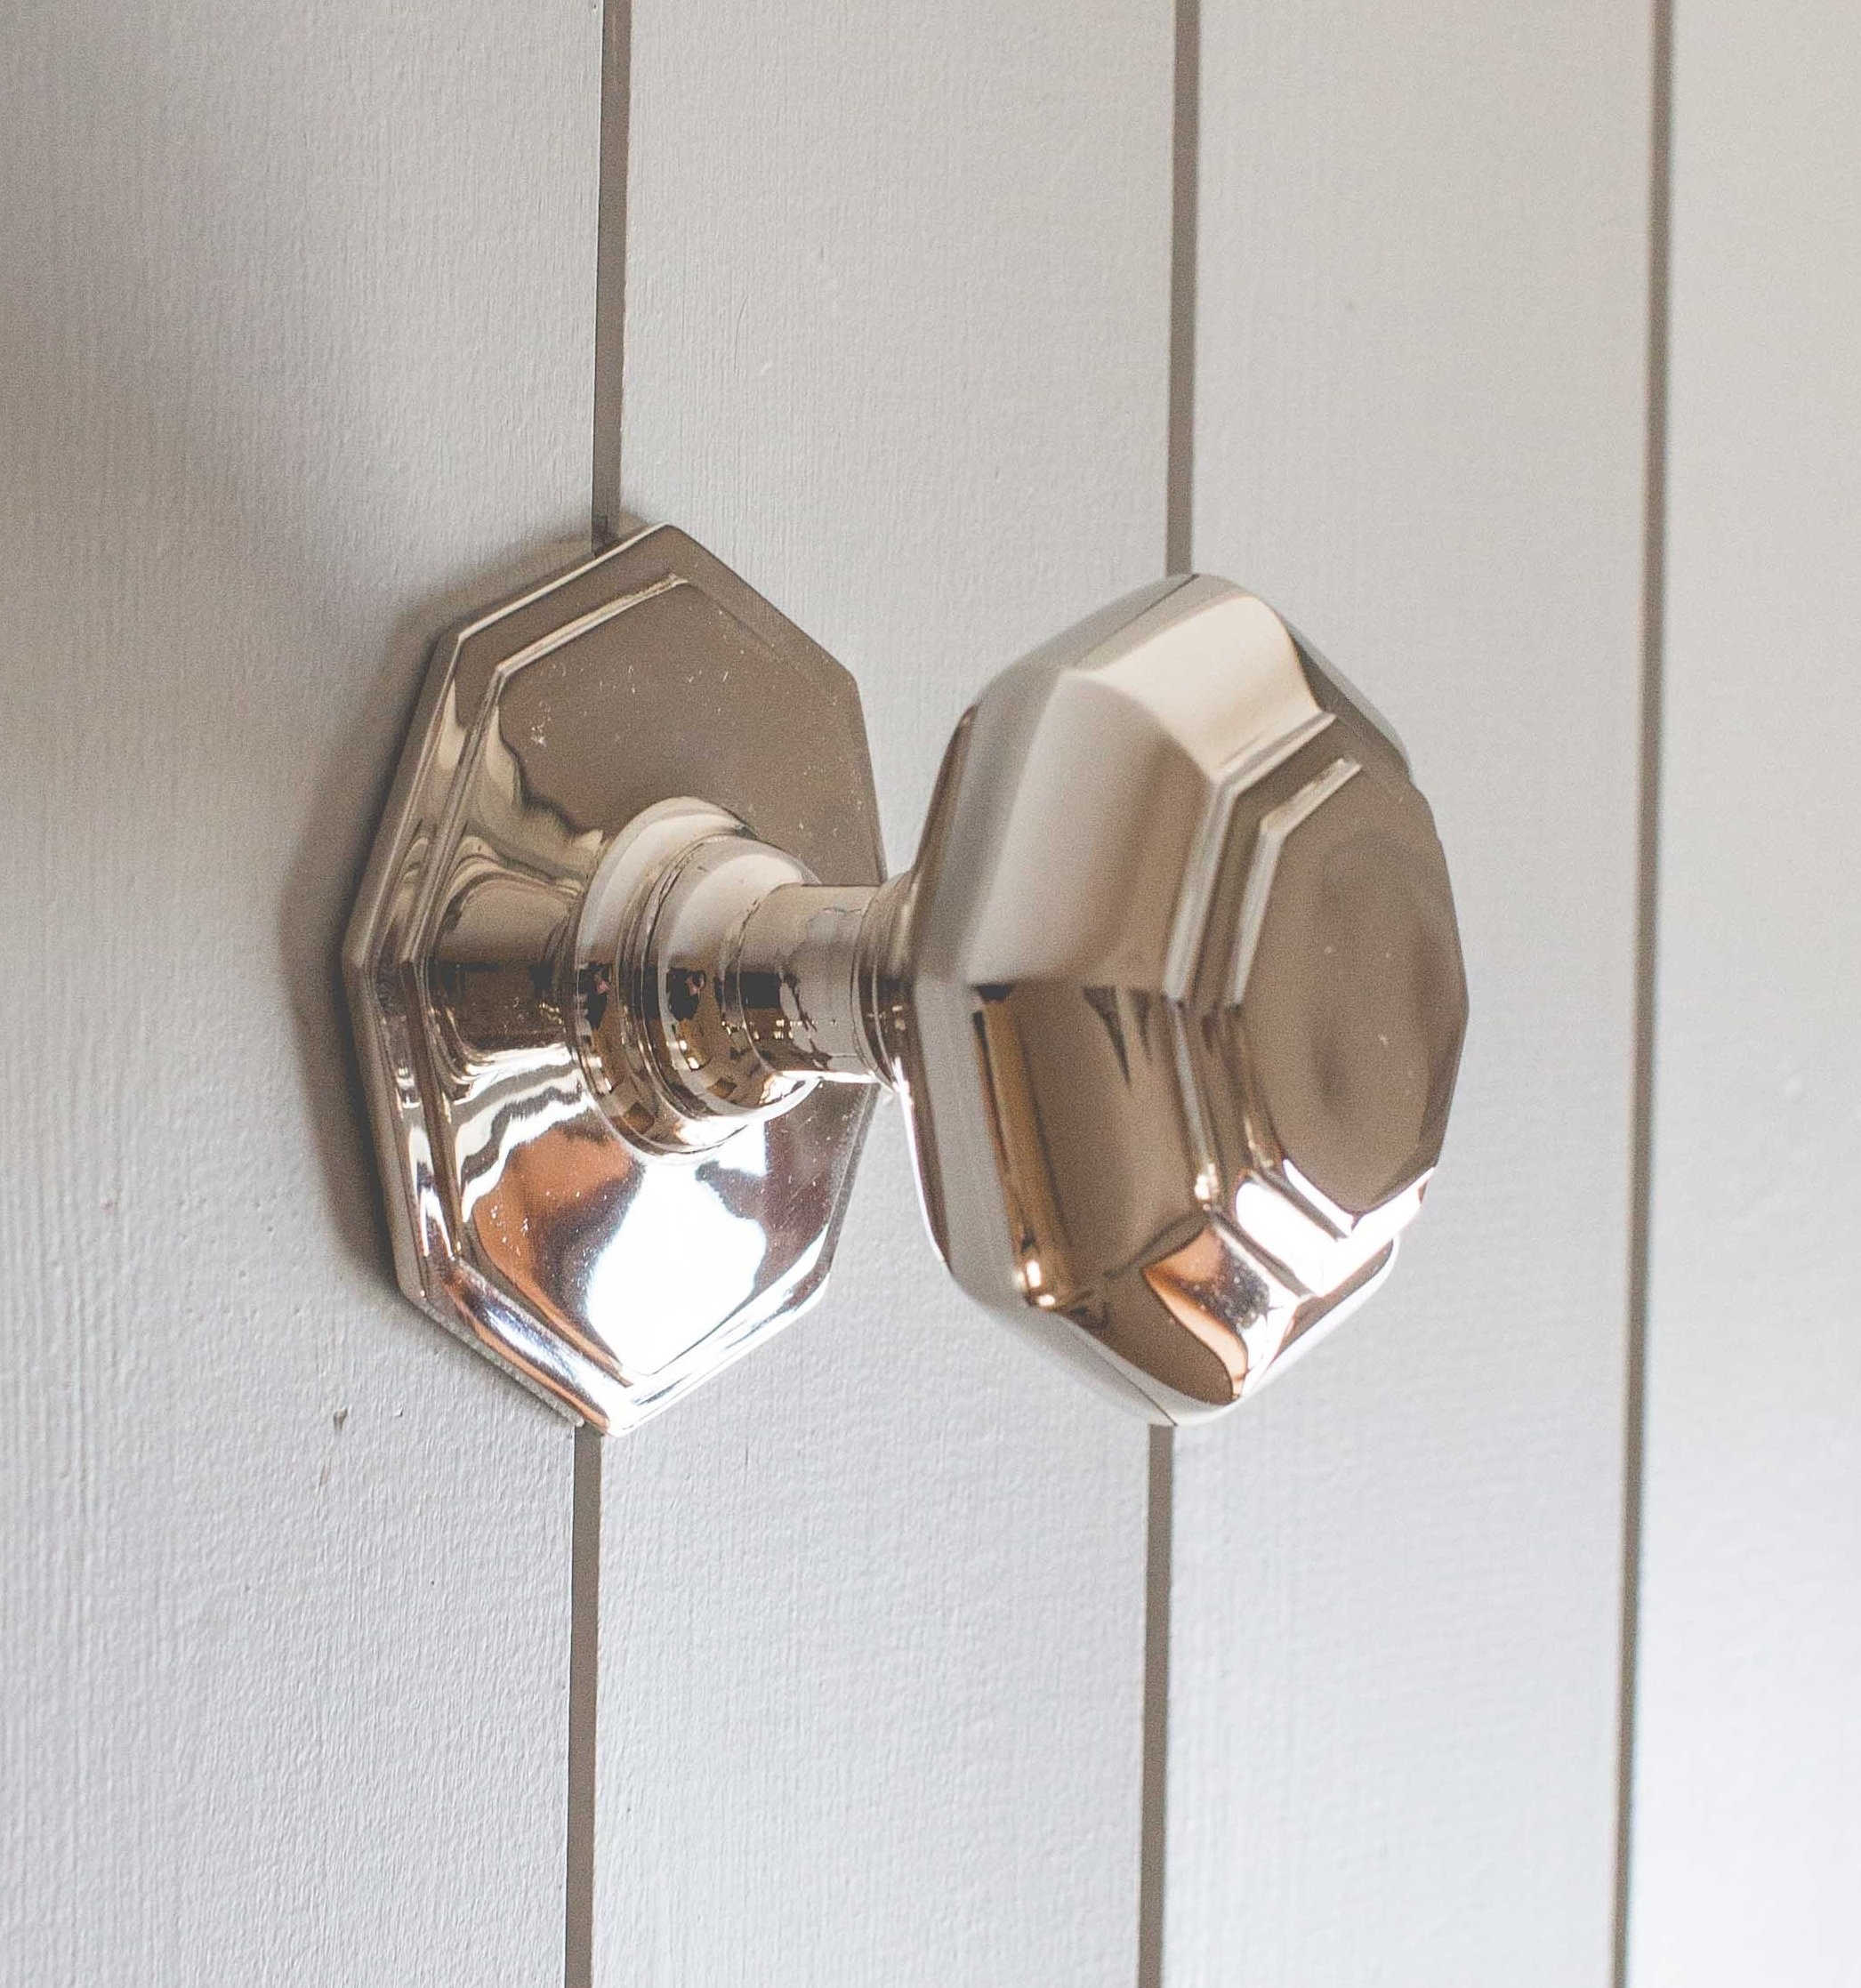 Octagonal Door Pull - Nickel